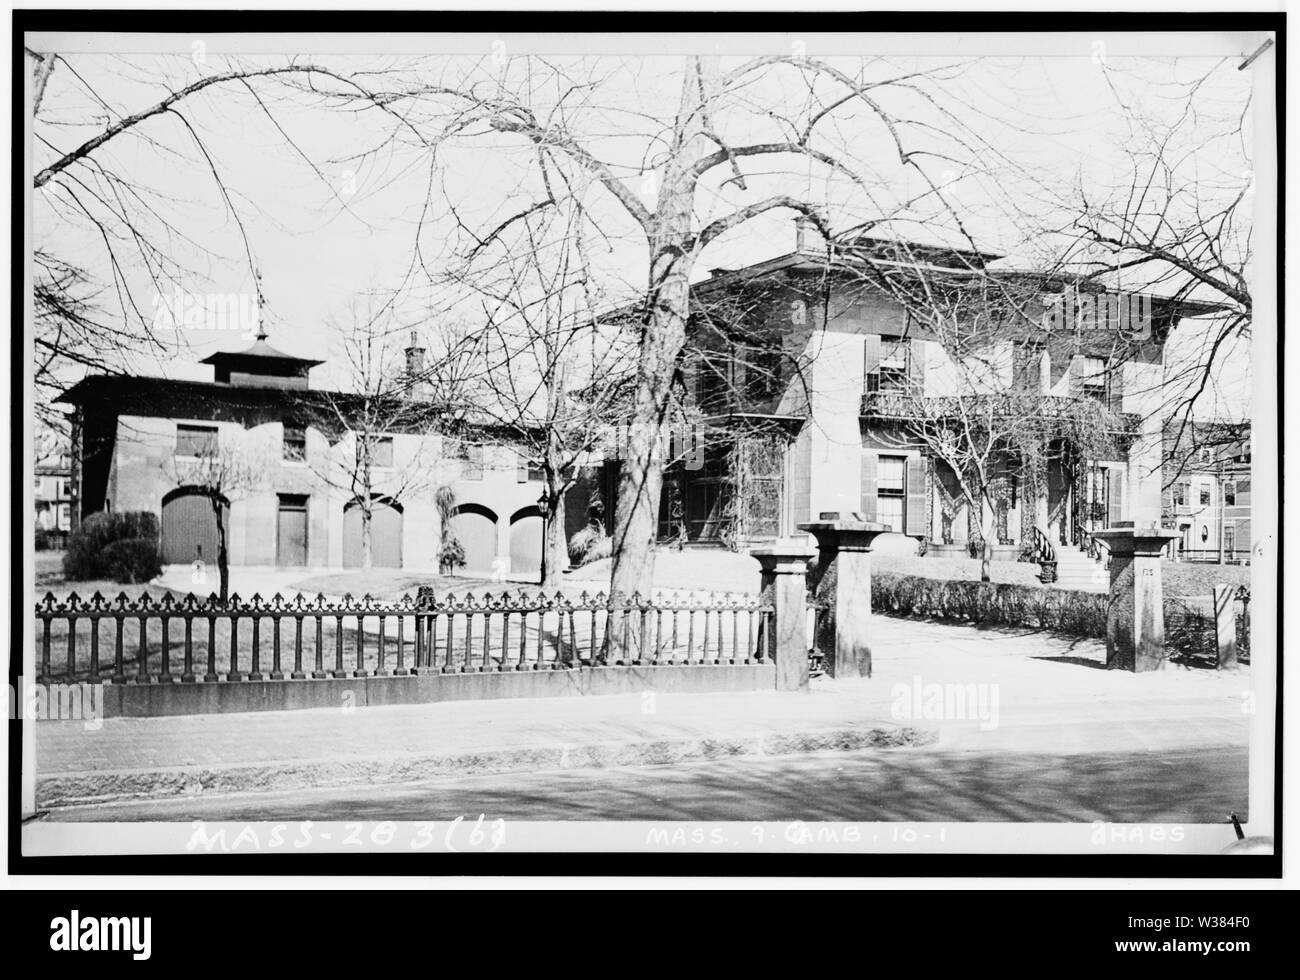 Photograph of Valentine-Fuller House & Garden, 125 Prospect Street, Cambridge, Massachusetts, USA. House built circa 1848; demolished in 1937. Architect unknown. HABS description: Significance: The house, which had an attached carriage house and stable, was one of the most handsomely designed and impressive residences in all Cambridge. The garden, which measured approximately 210' x 510', was unusually large for its neighborhood and was substantially unaltered from its original plan. House and grounds together comprised a particularly fine intact example of an outstanding mid-nineteenth-centur - Stock Image